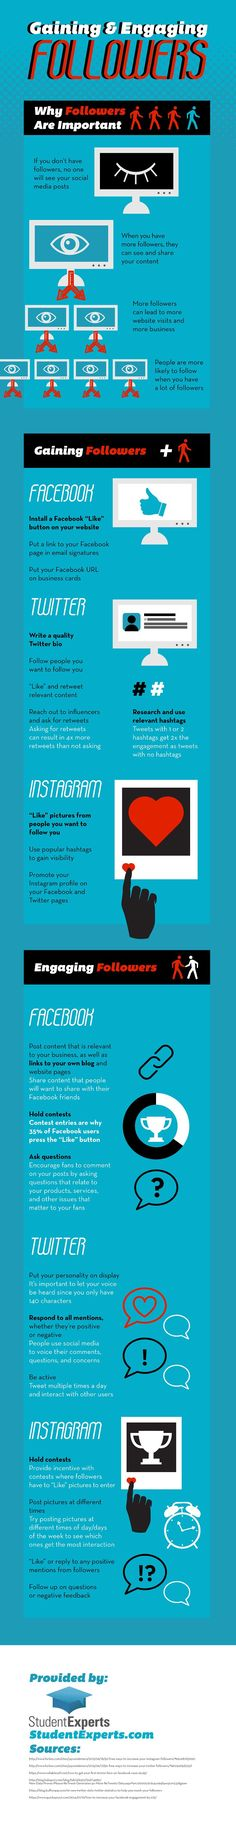 Gaining and Engaging Followers on Social Media – Infographic | http://www.digitalinformationworld.com/